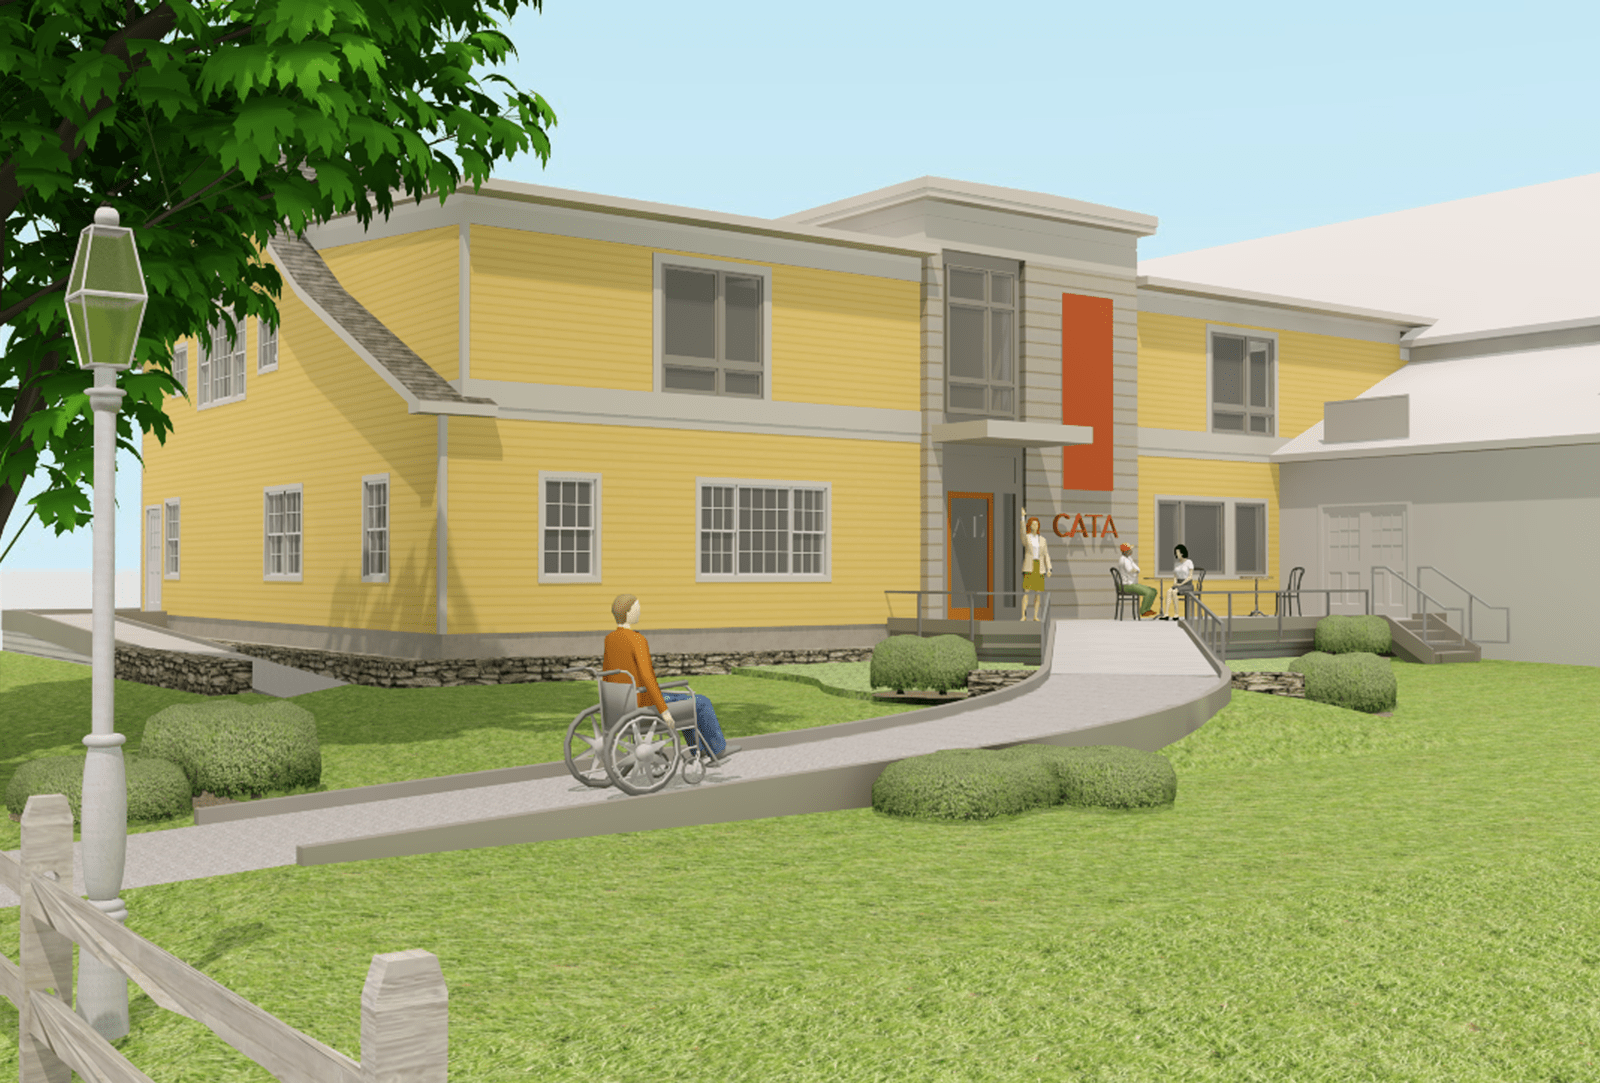 An architectural rendering of CATA's new home, showing a bright yellow, two-story building with a garden and sloped path for universal access to the building. In the image, an artist in a wheelchair moves up the path toward the building where there is a small terrace with other artists gathering.